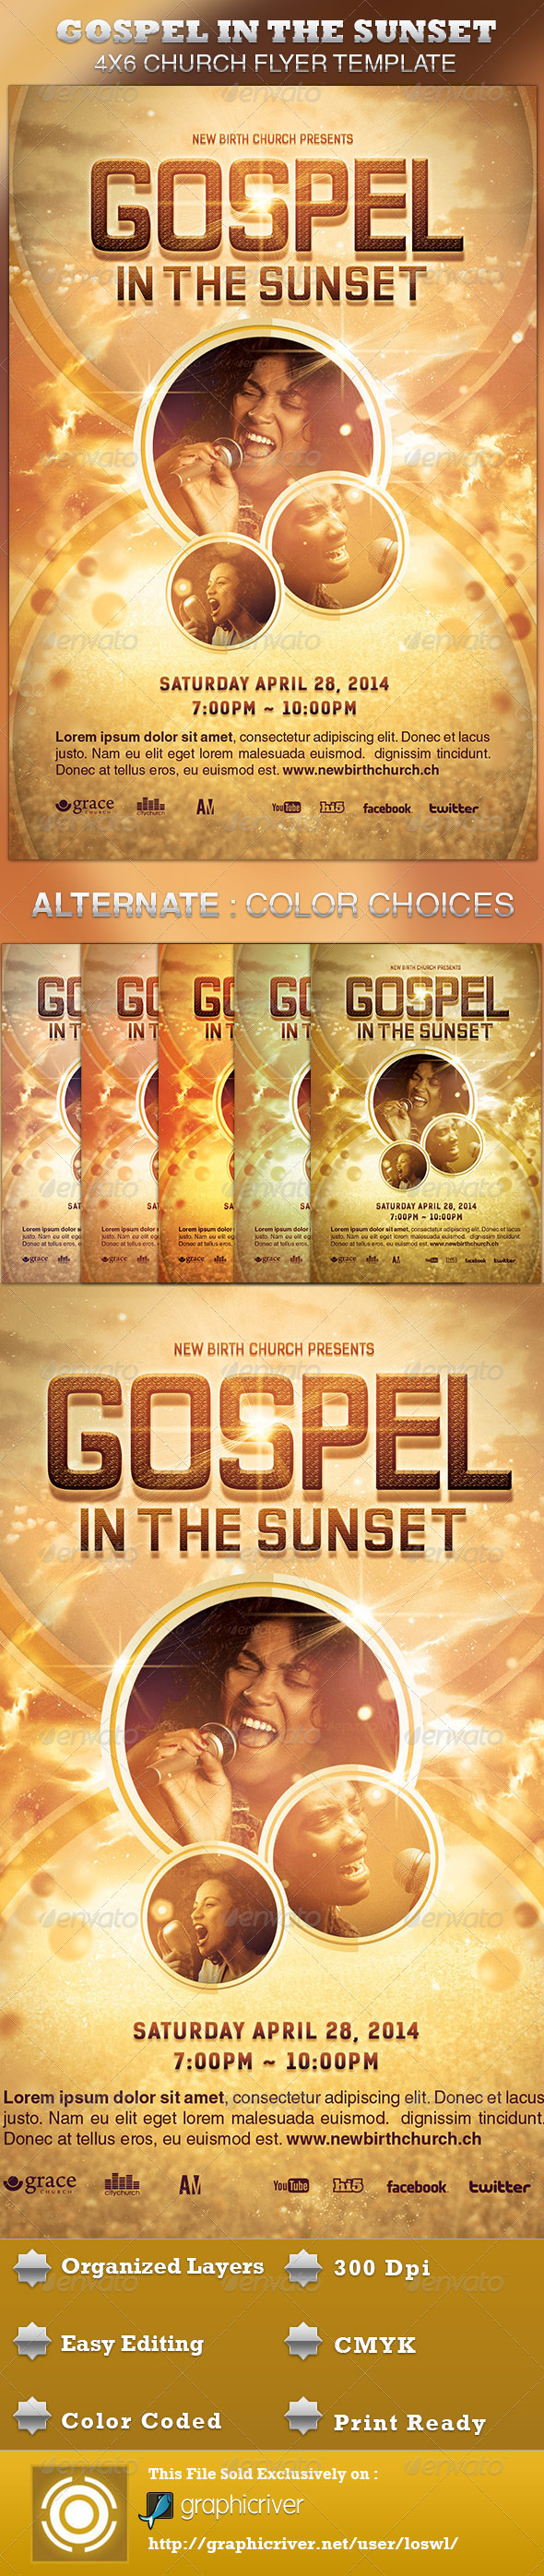 graphicriver saved church flyer template 4046526 template 6837550 graphicriver gospel in the sunset church flyer